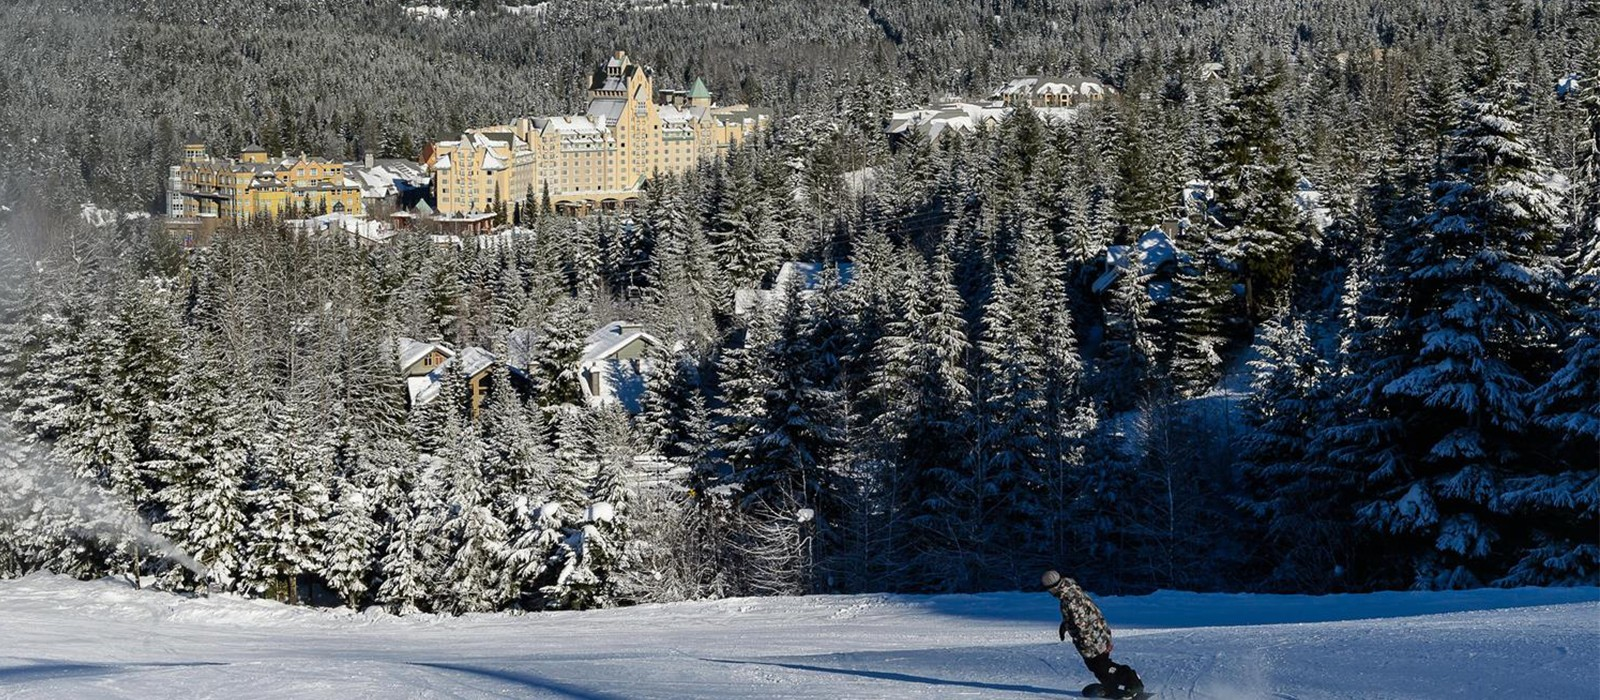 header - fairmont chateau whistler - luxury canada holiday packages